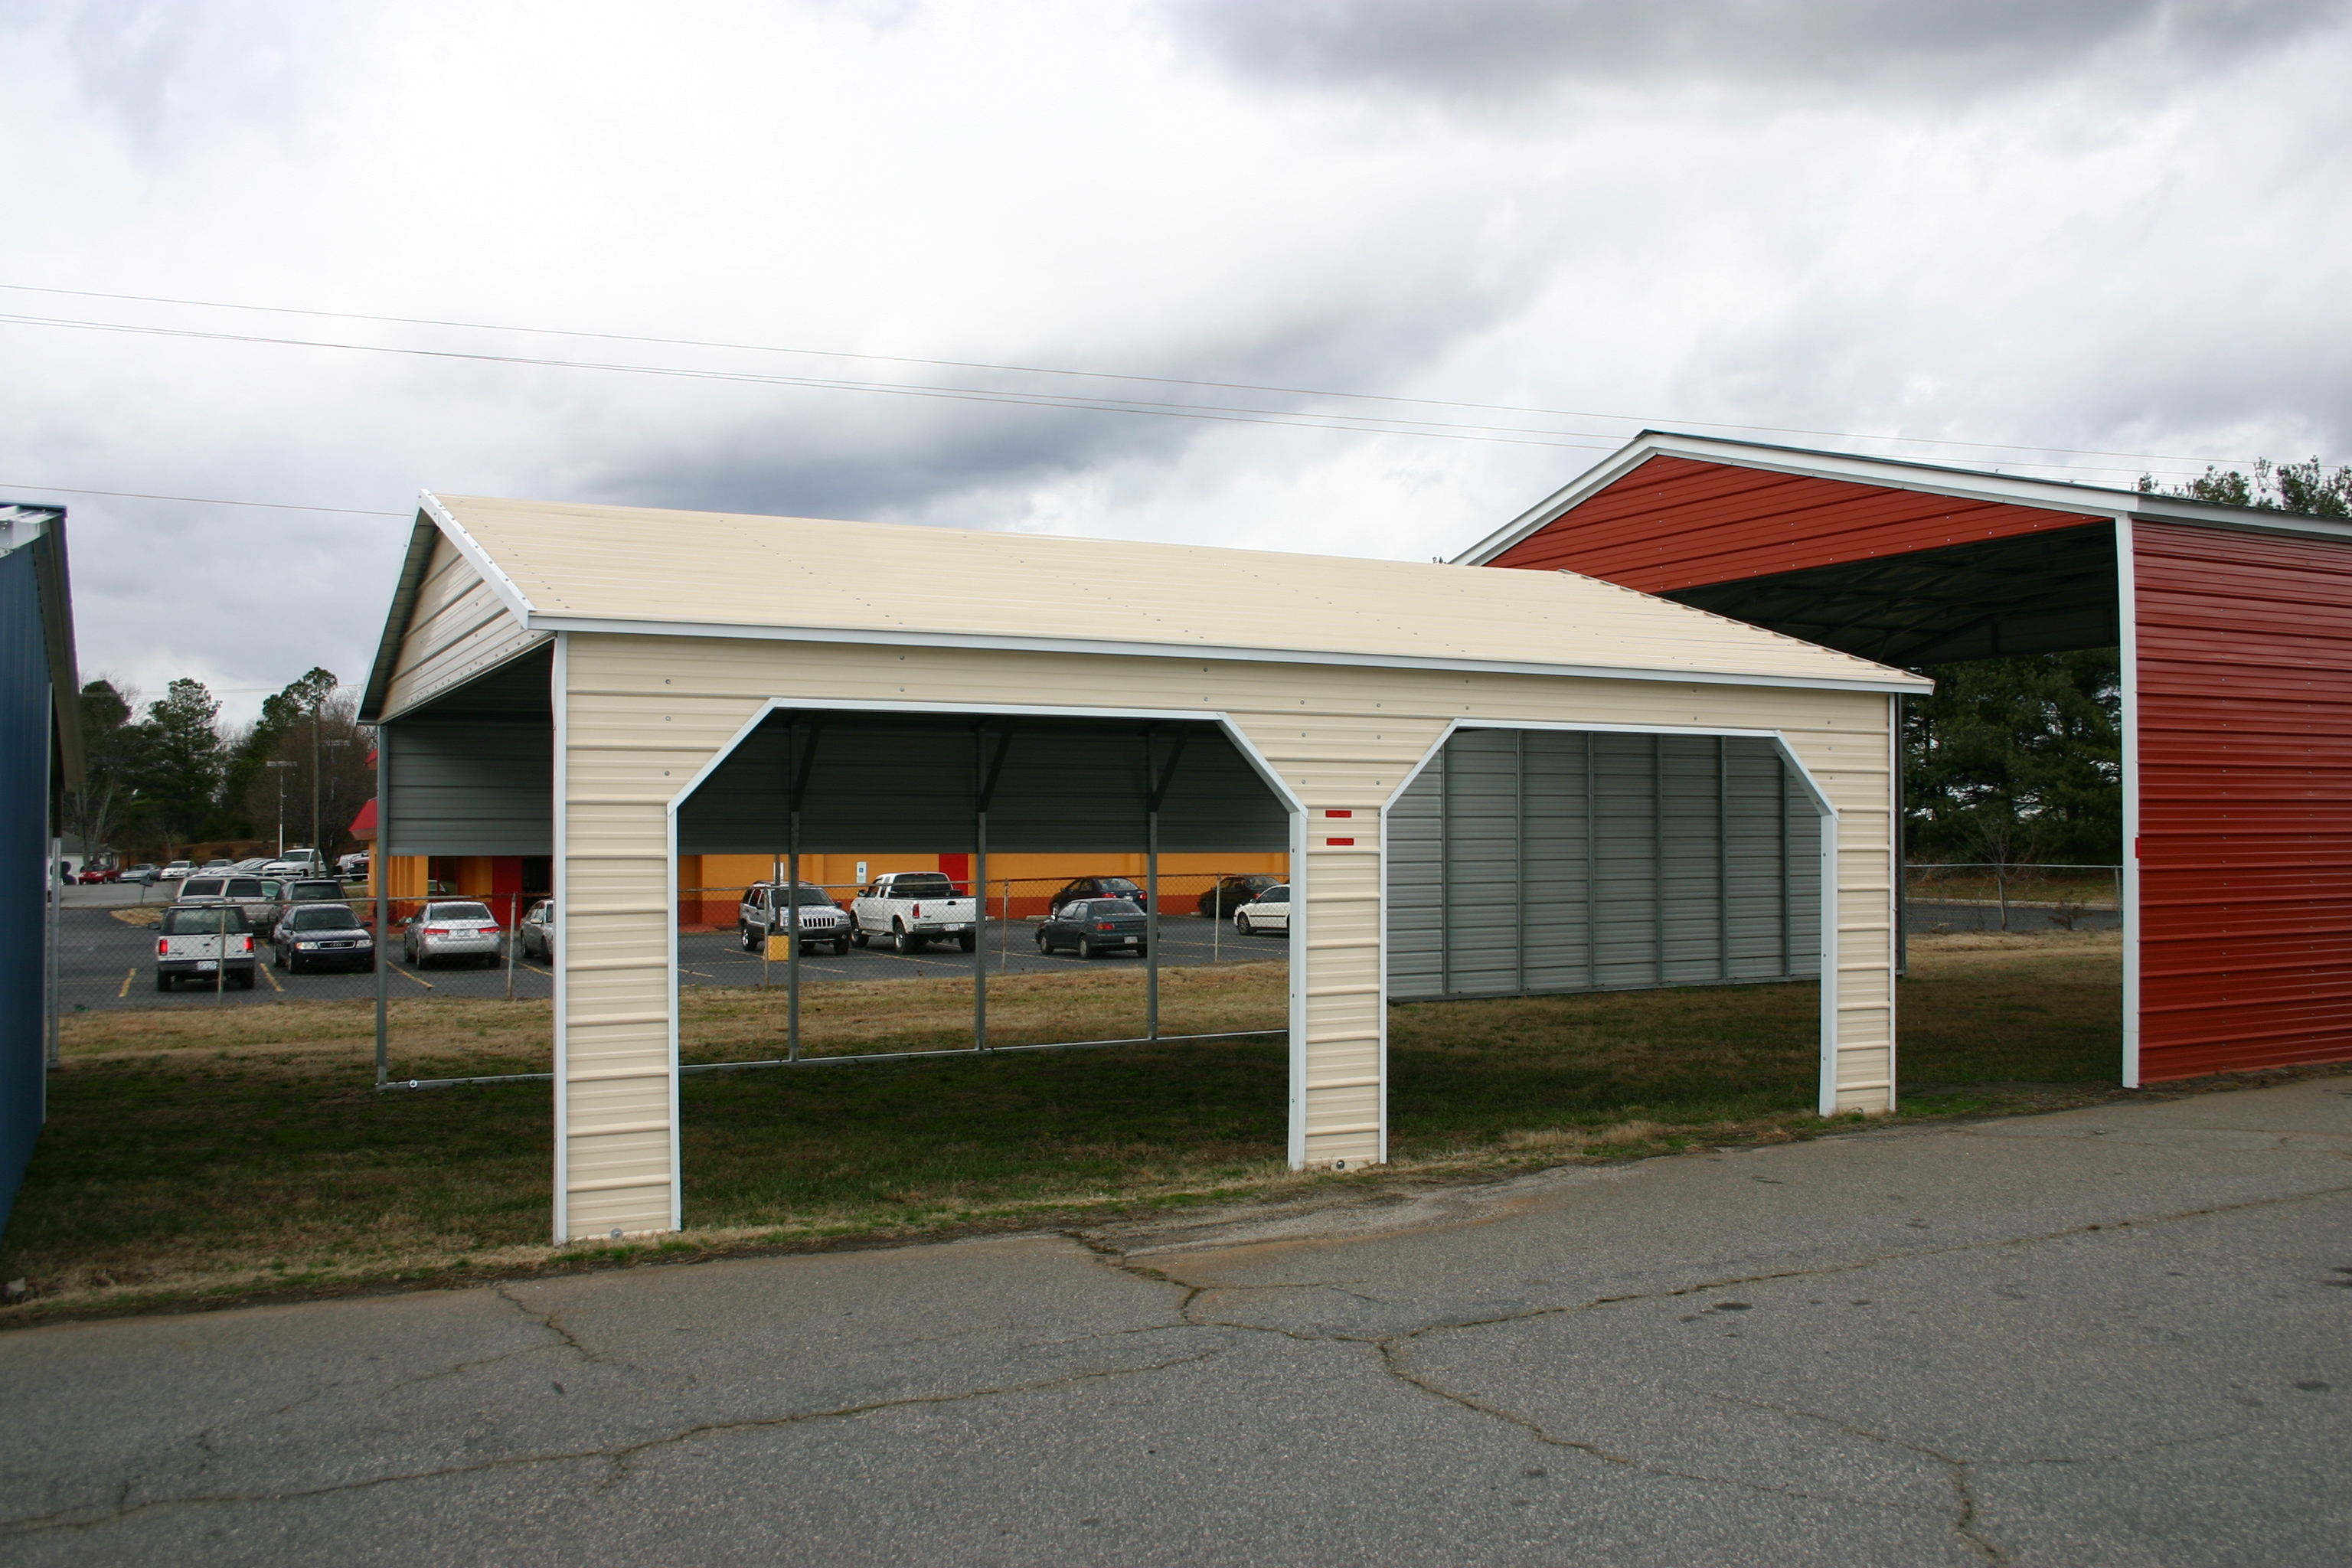 Metal carports american fork ut american fork utah carports for Carports with sides